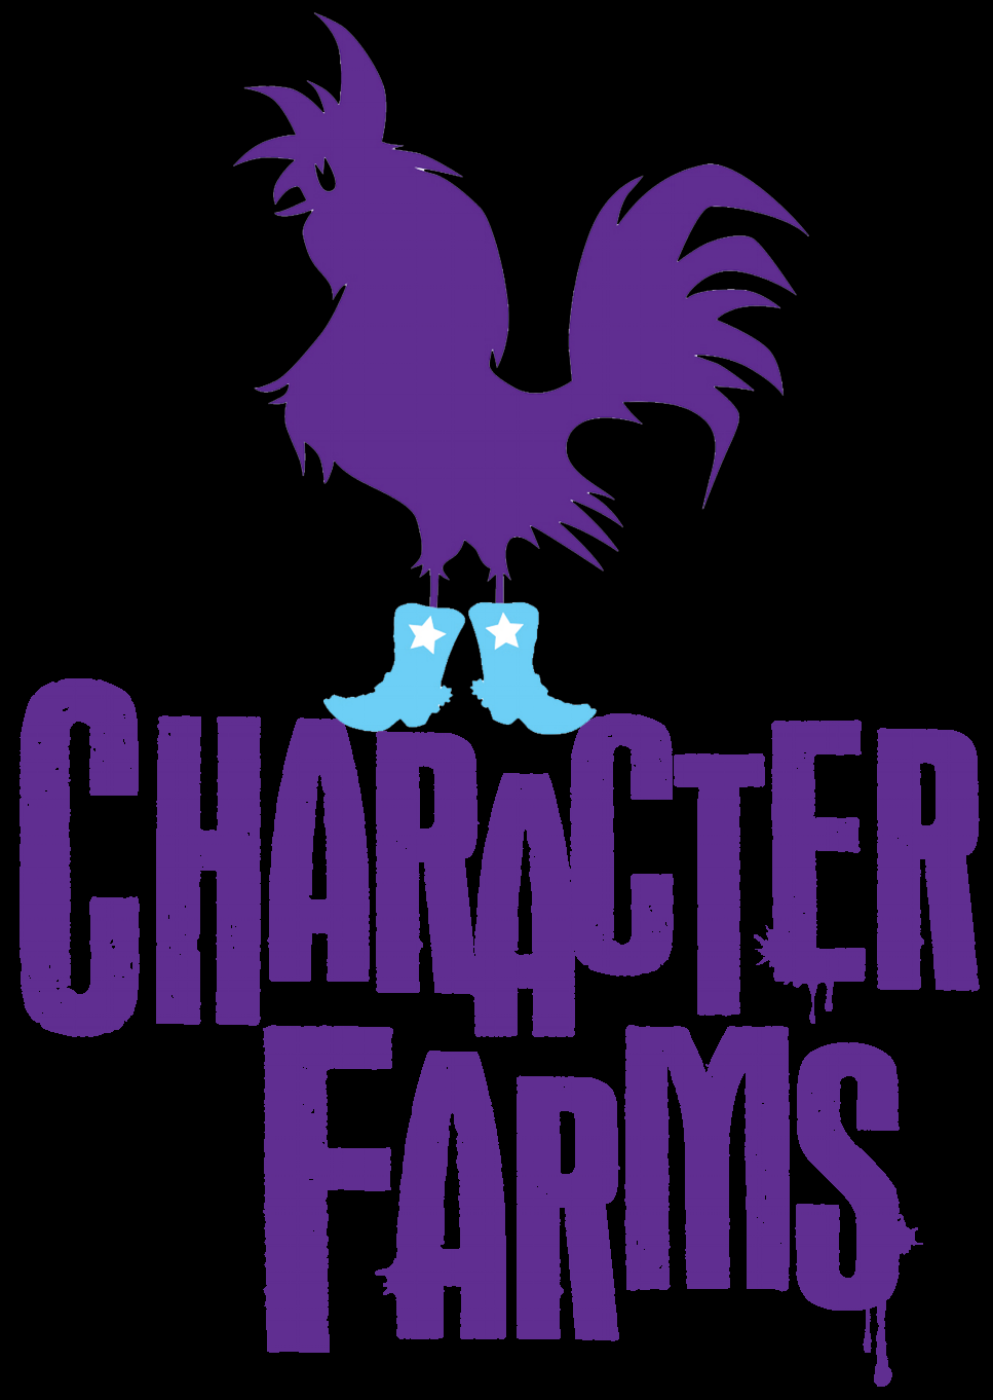 Character Farms, LLC